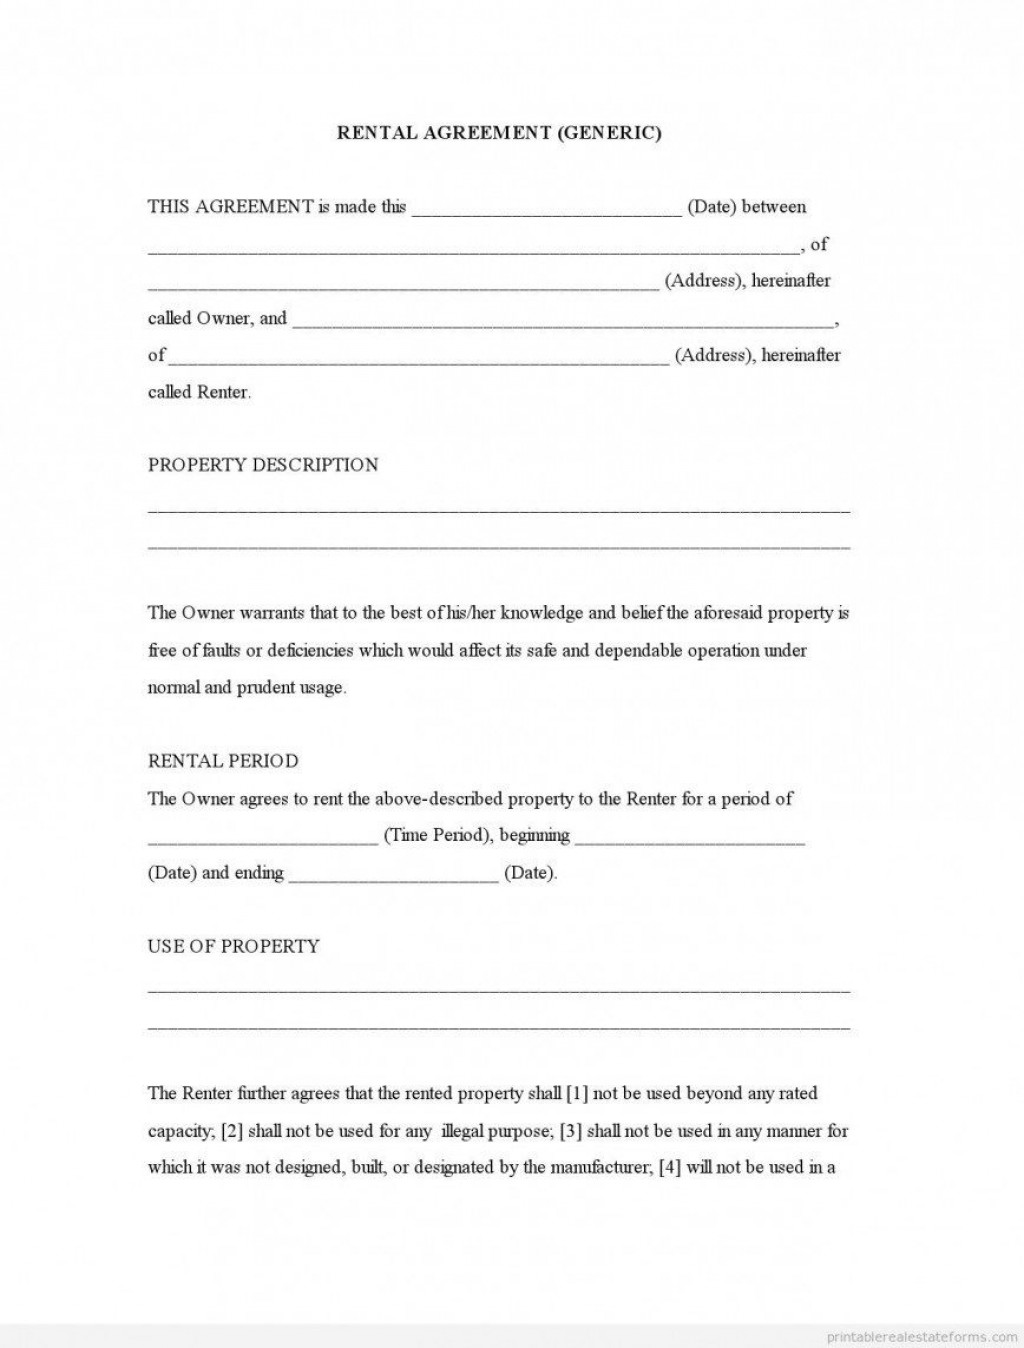 009 Magnificent Rent Agreement Format In Word Free Download Design  Rental Tamil Hindi For HouseLarge